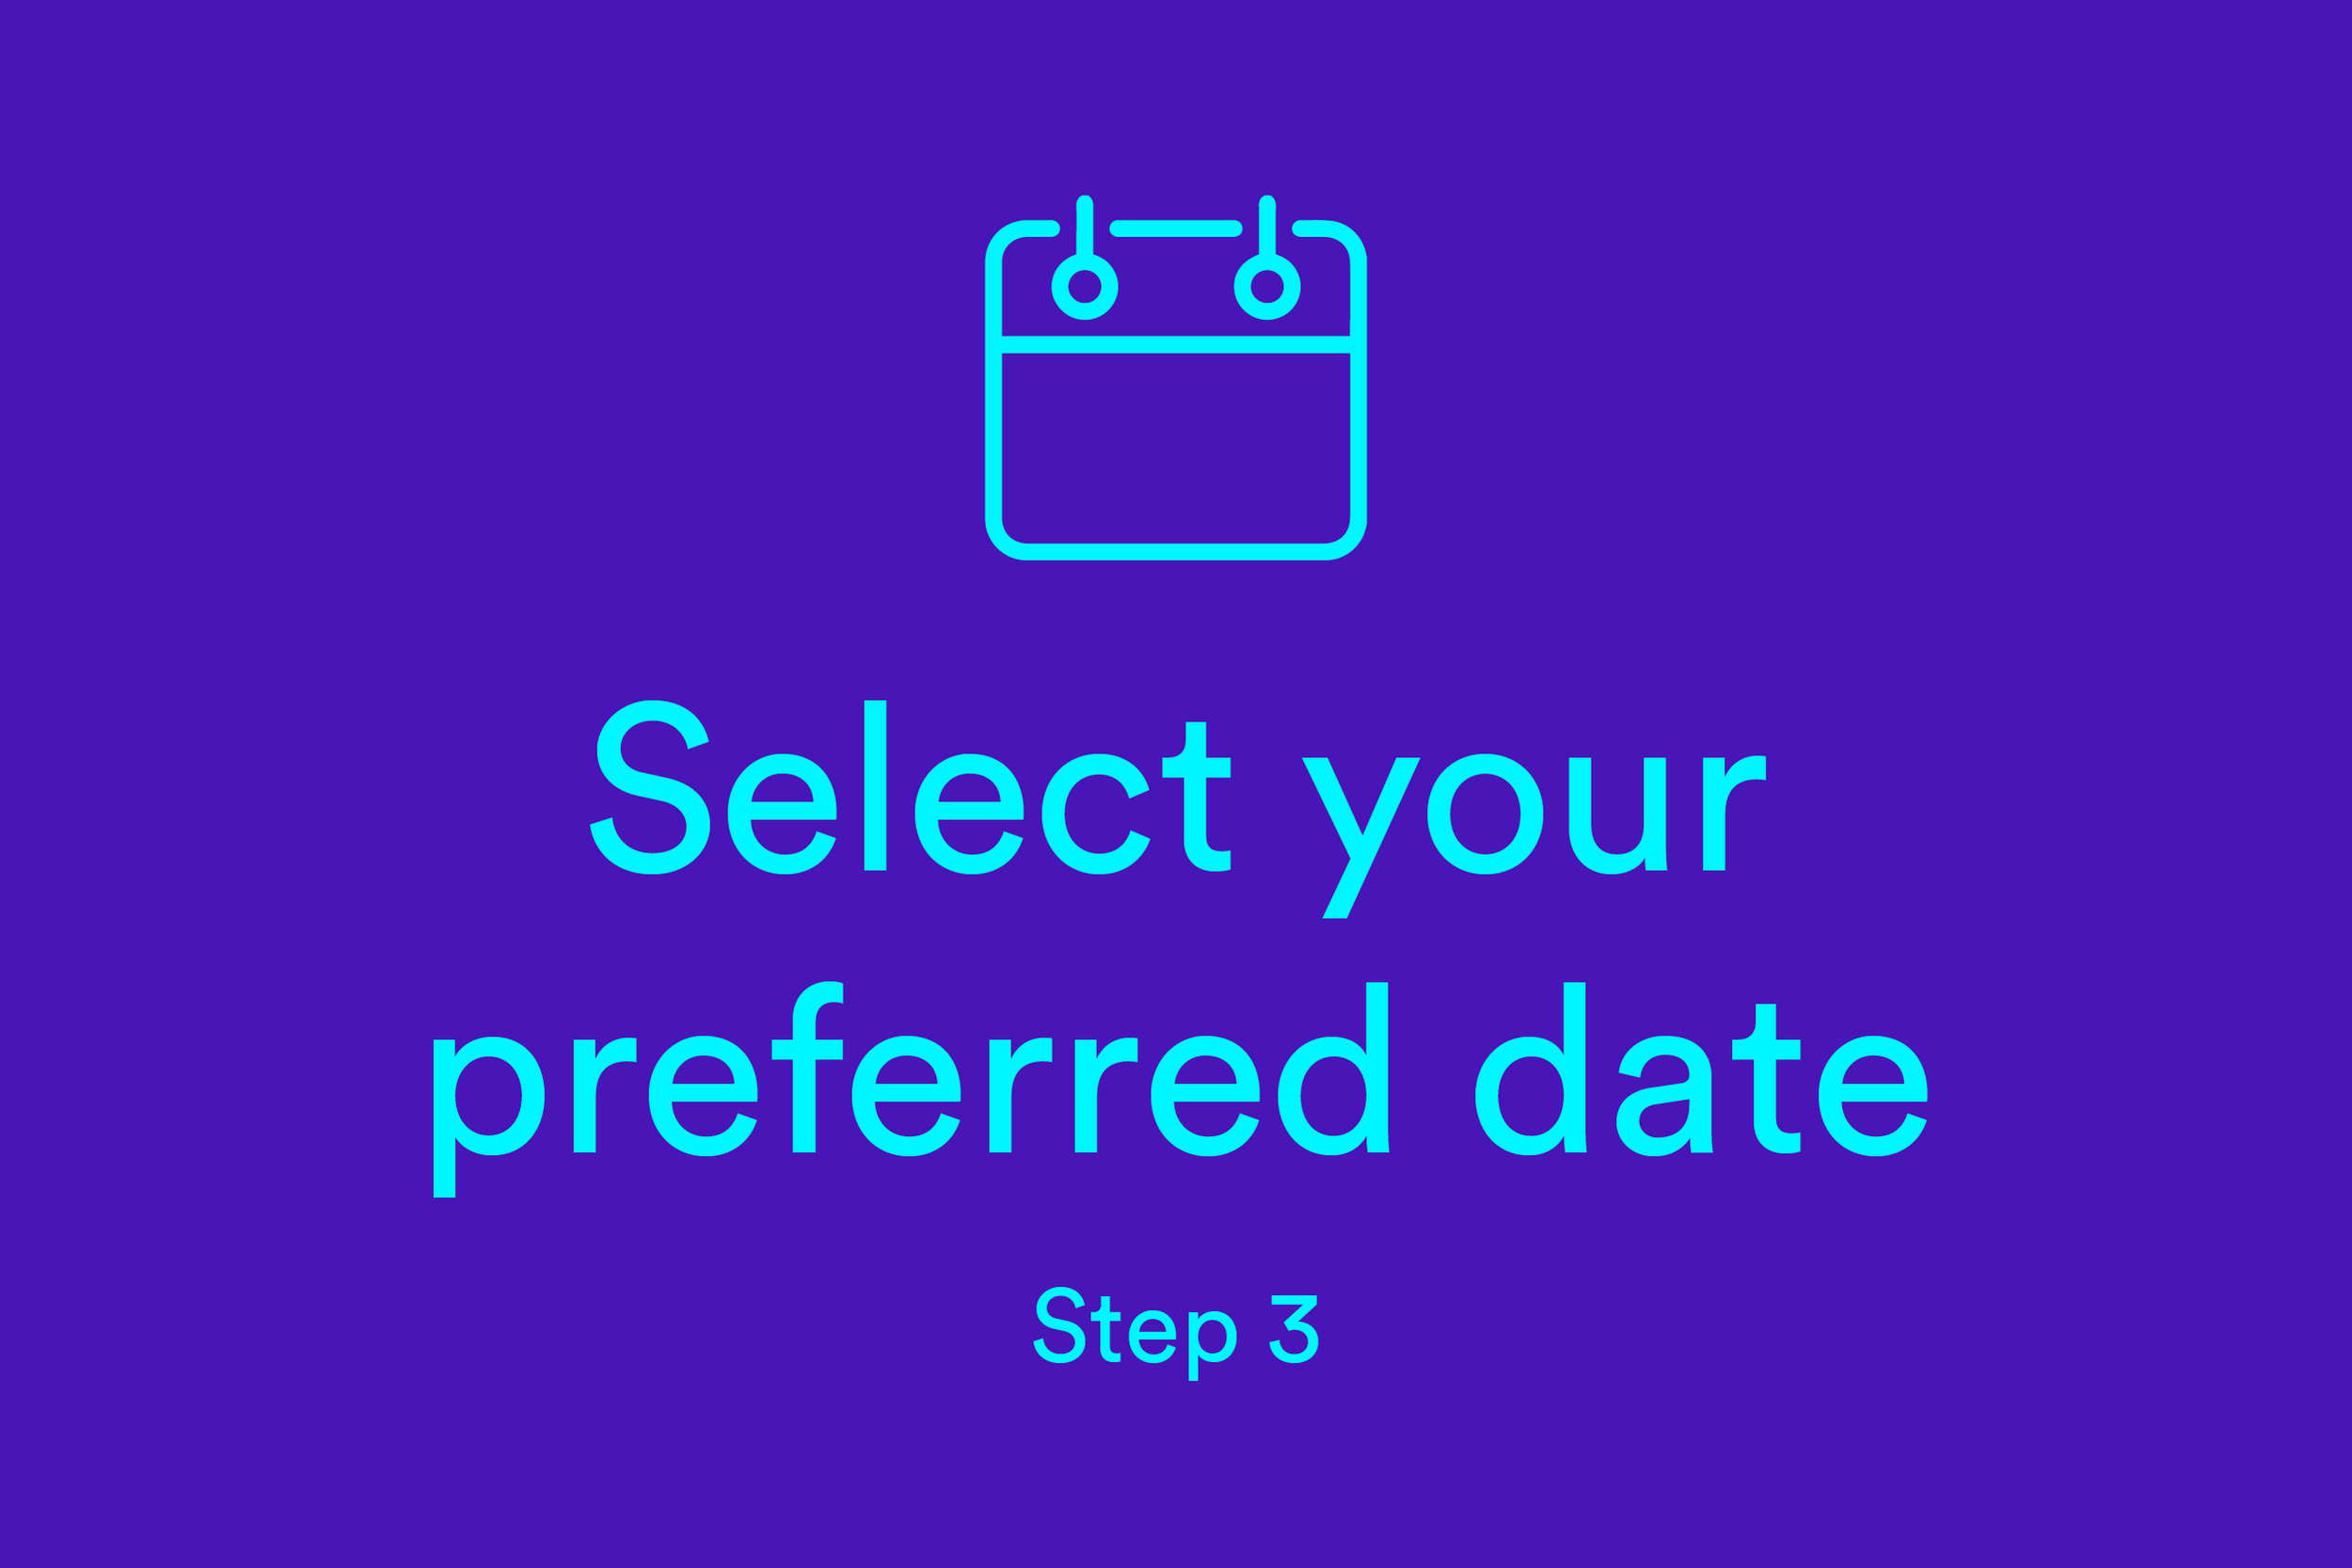 Select your preferred date (Step 3)